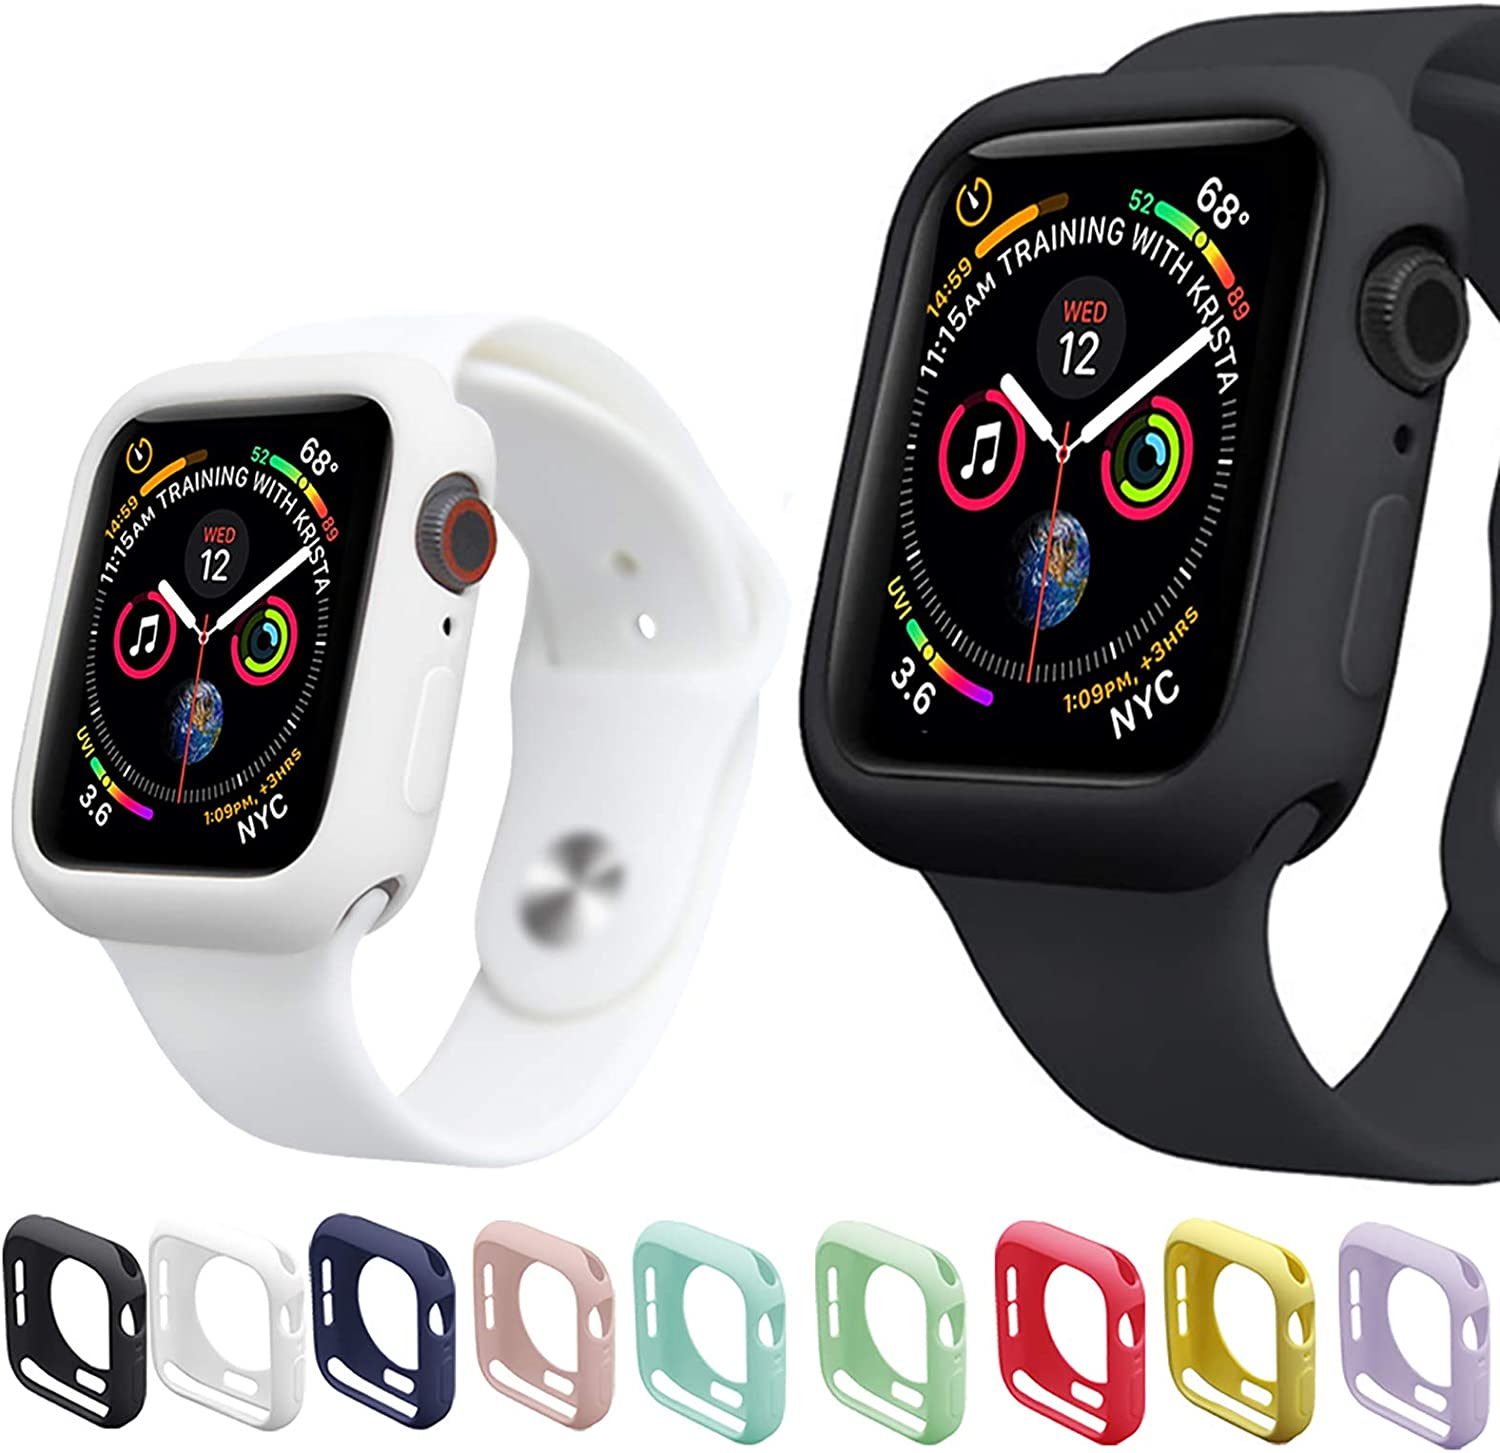 Miimall [9 Pack] Compatible Apple Watch Series 6 Series 5 Series 4 Case 44mm, Anti-Scratch Shockproof Protective Cover Case for 44mm Series6 / Series 5 / Series 4